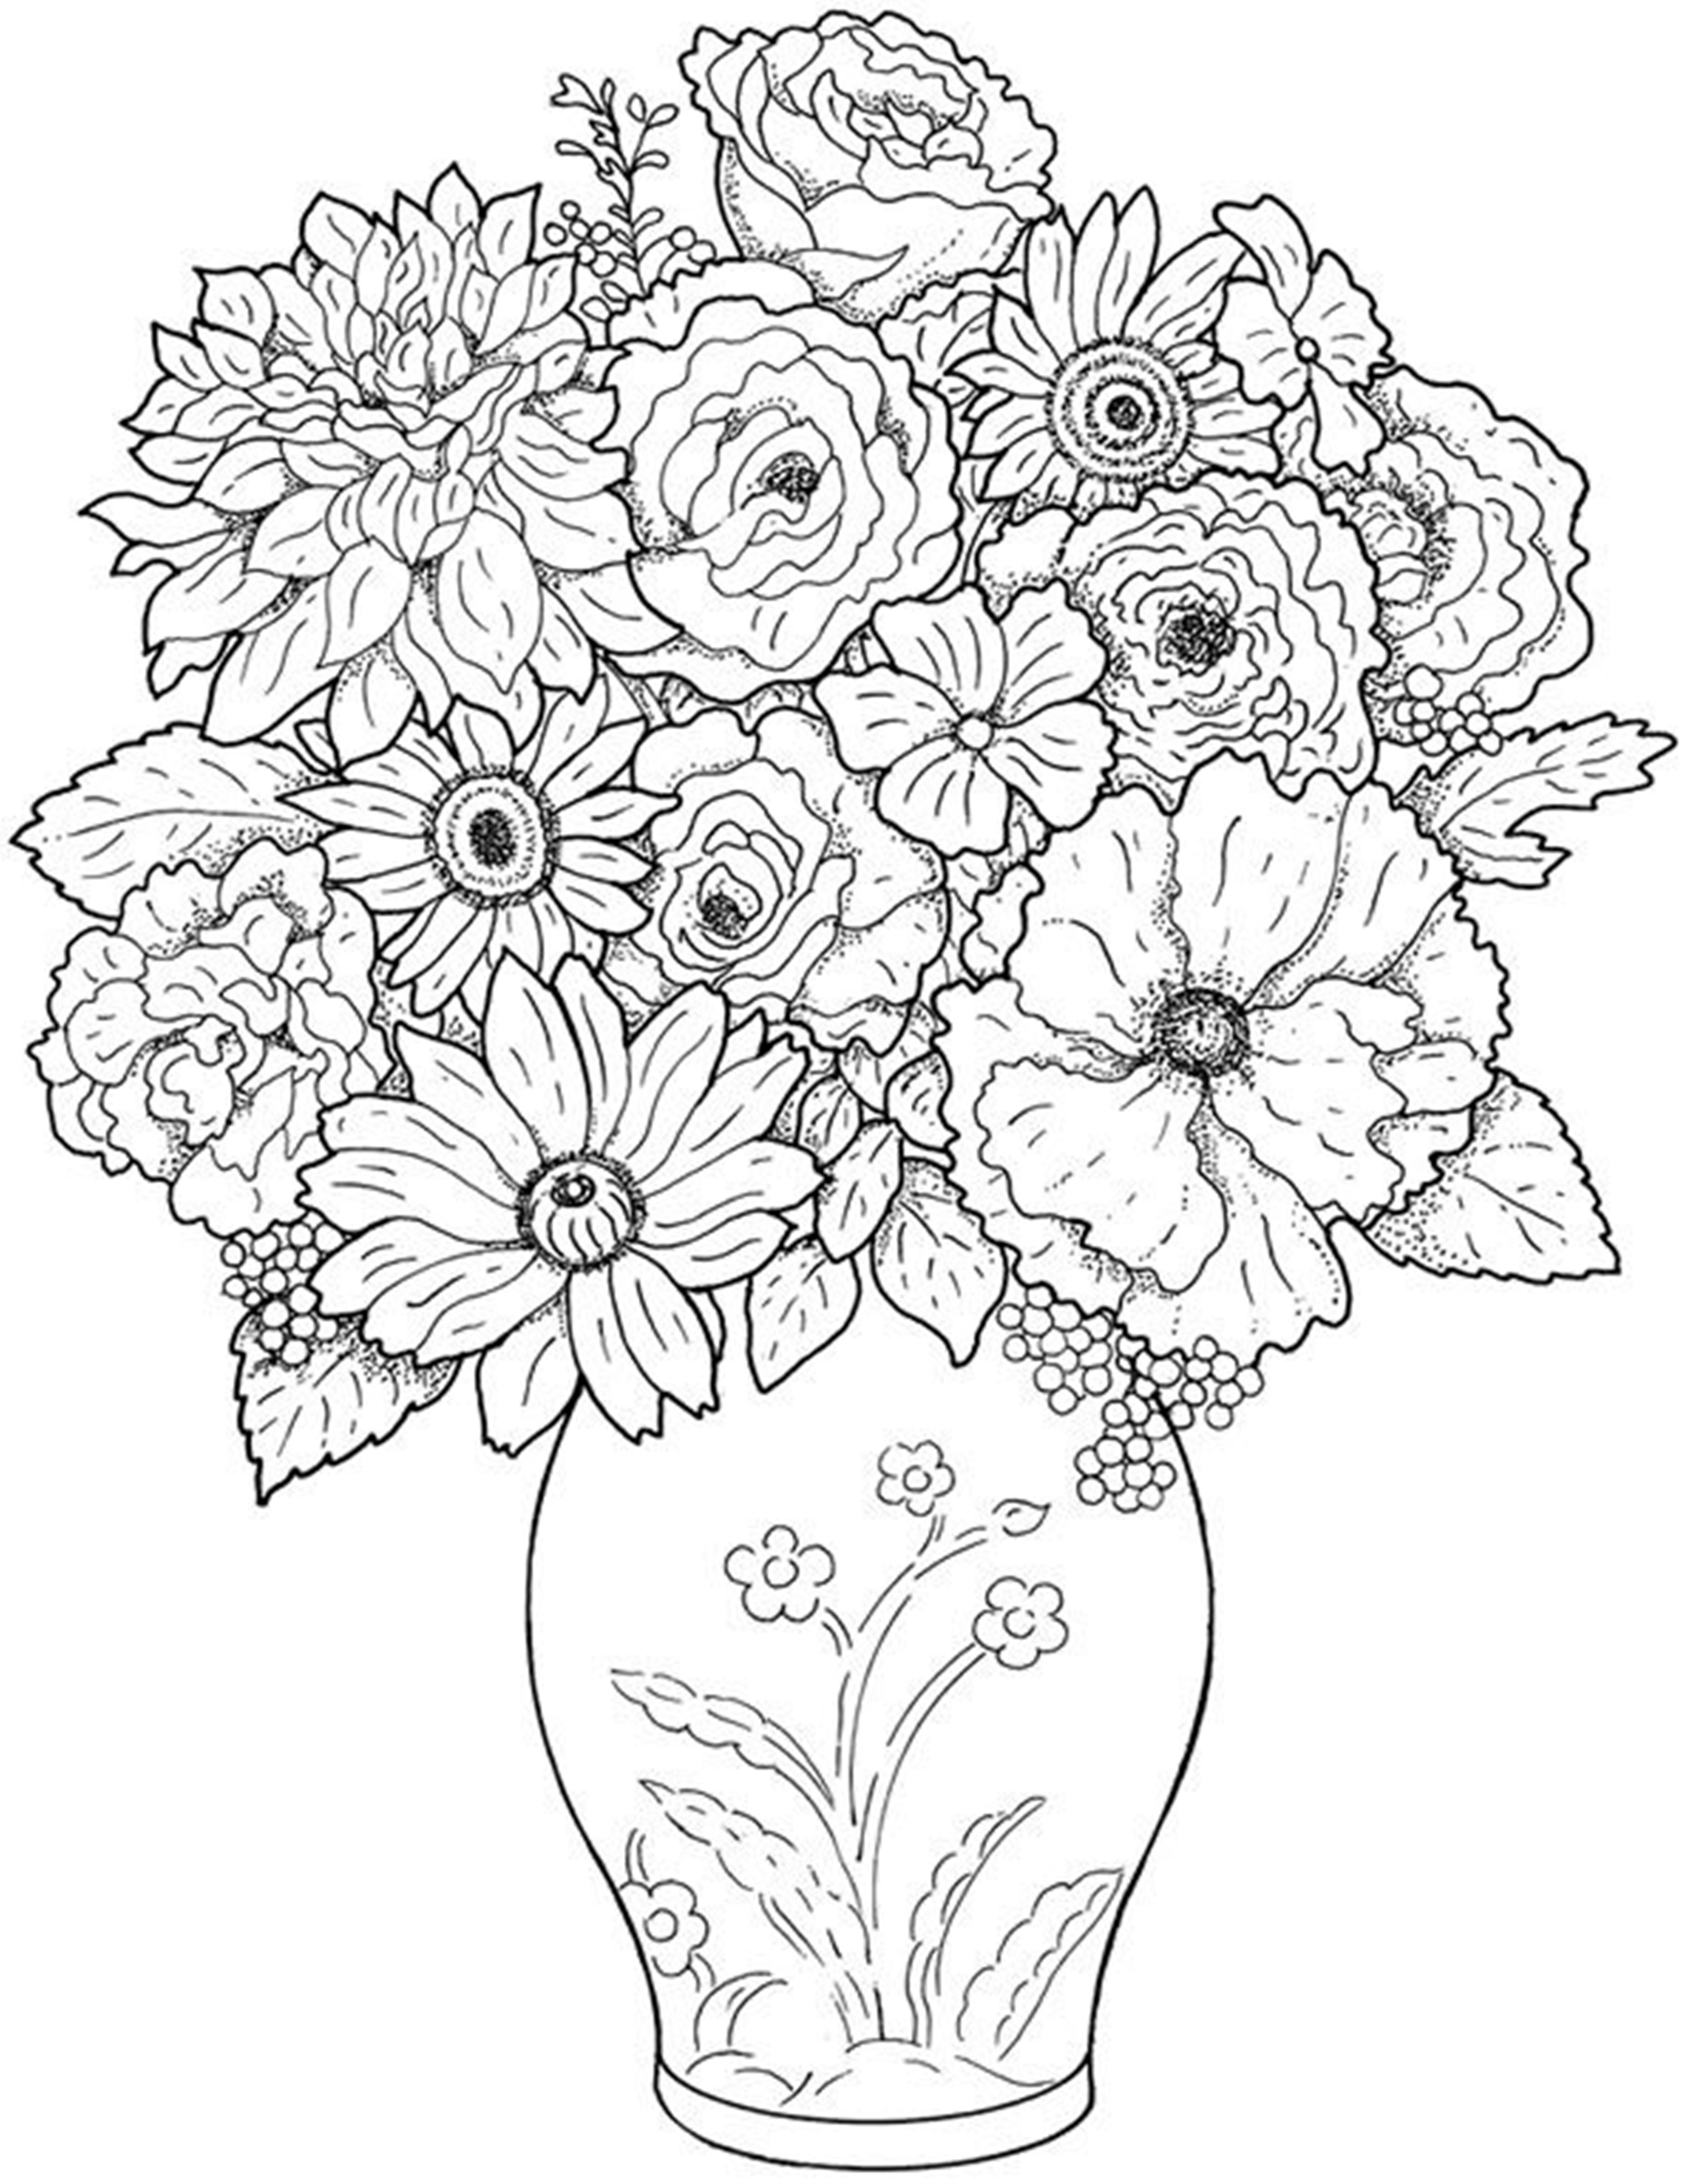 flower coloring pages to print free easy to print flower coloring pages tulamama coloring print to pages flower